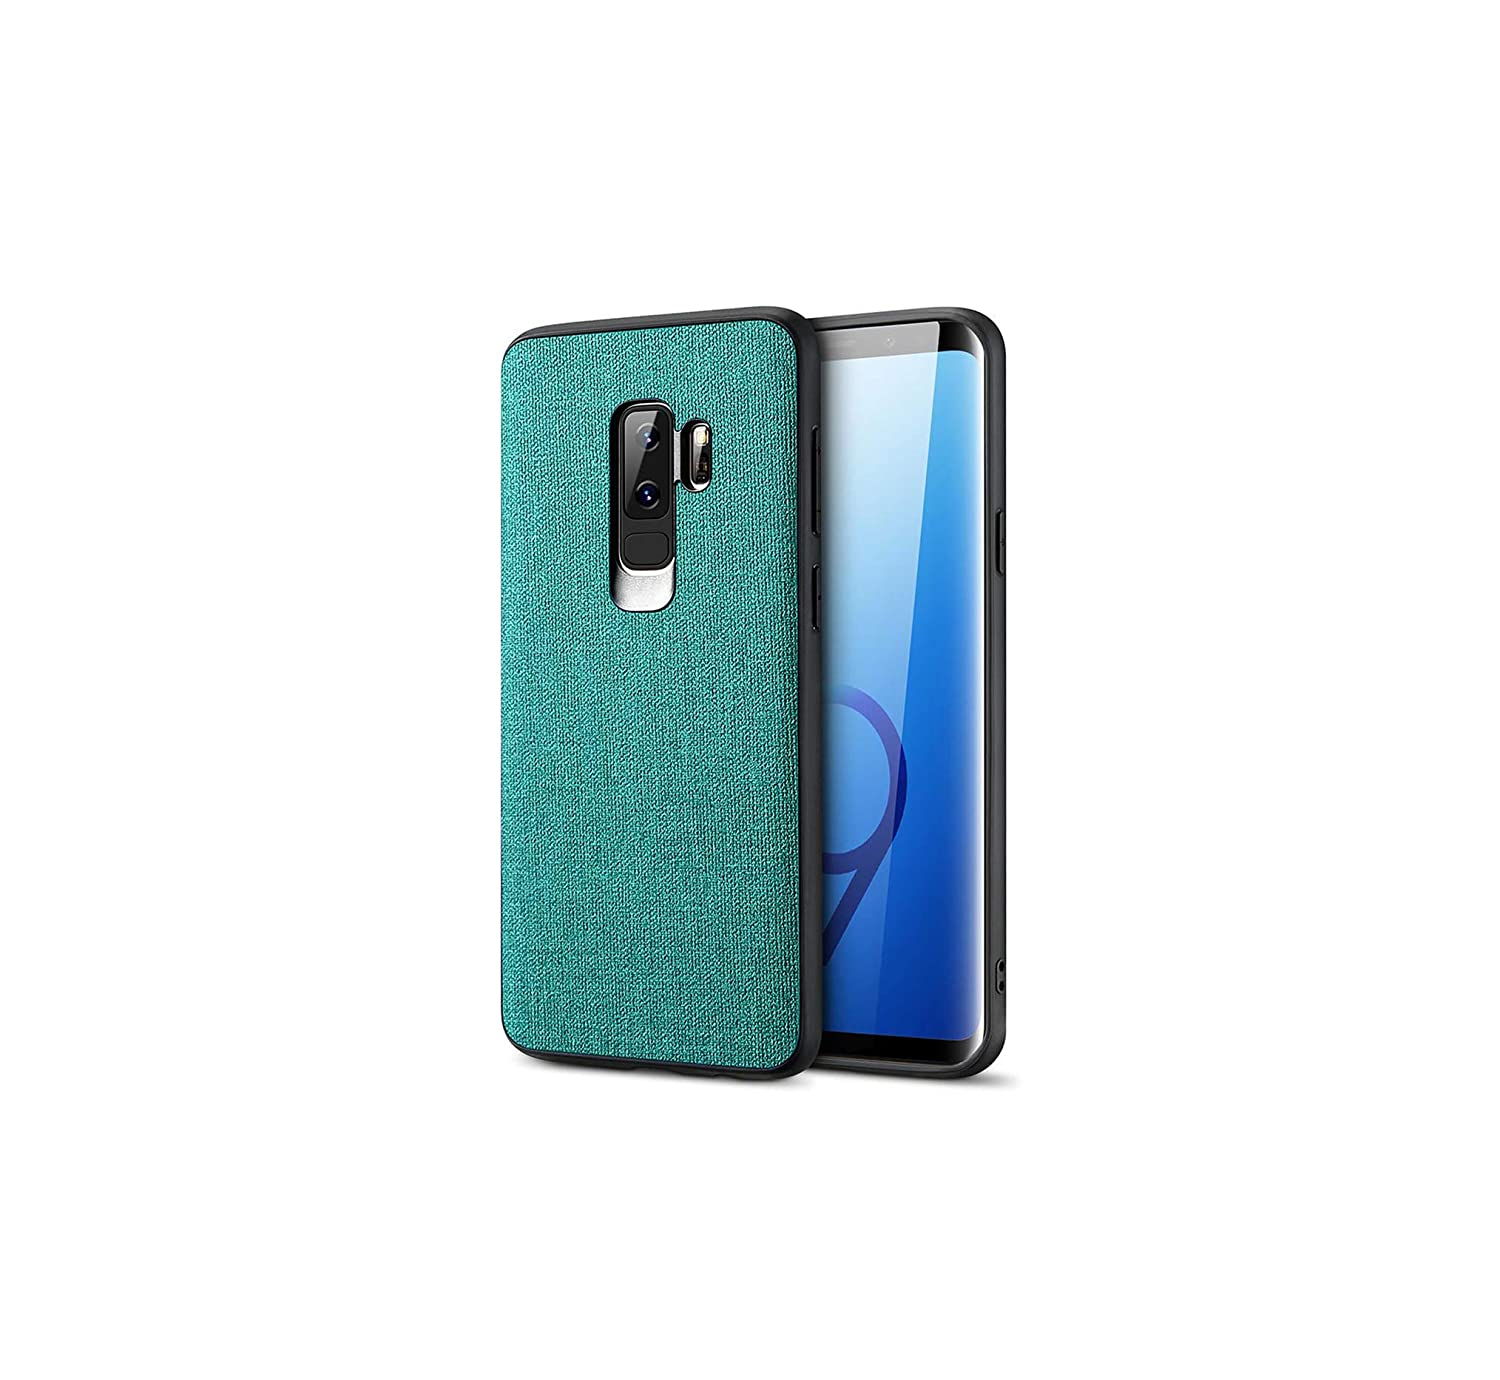 Amazon.com: OldDream - Funda de tela para Samsung Galaxy A6 ...